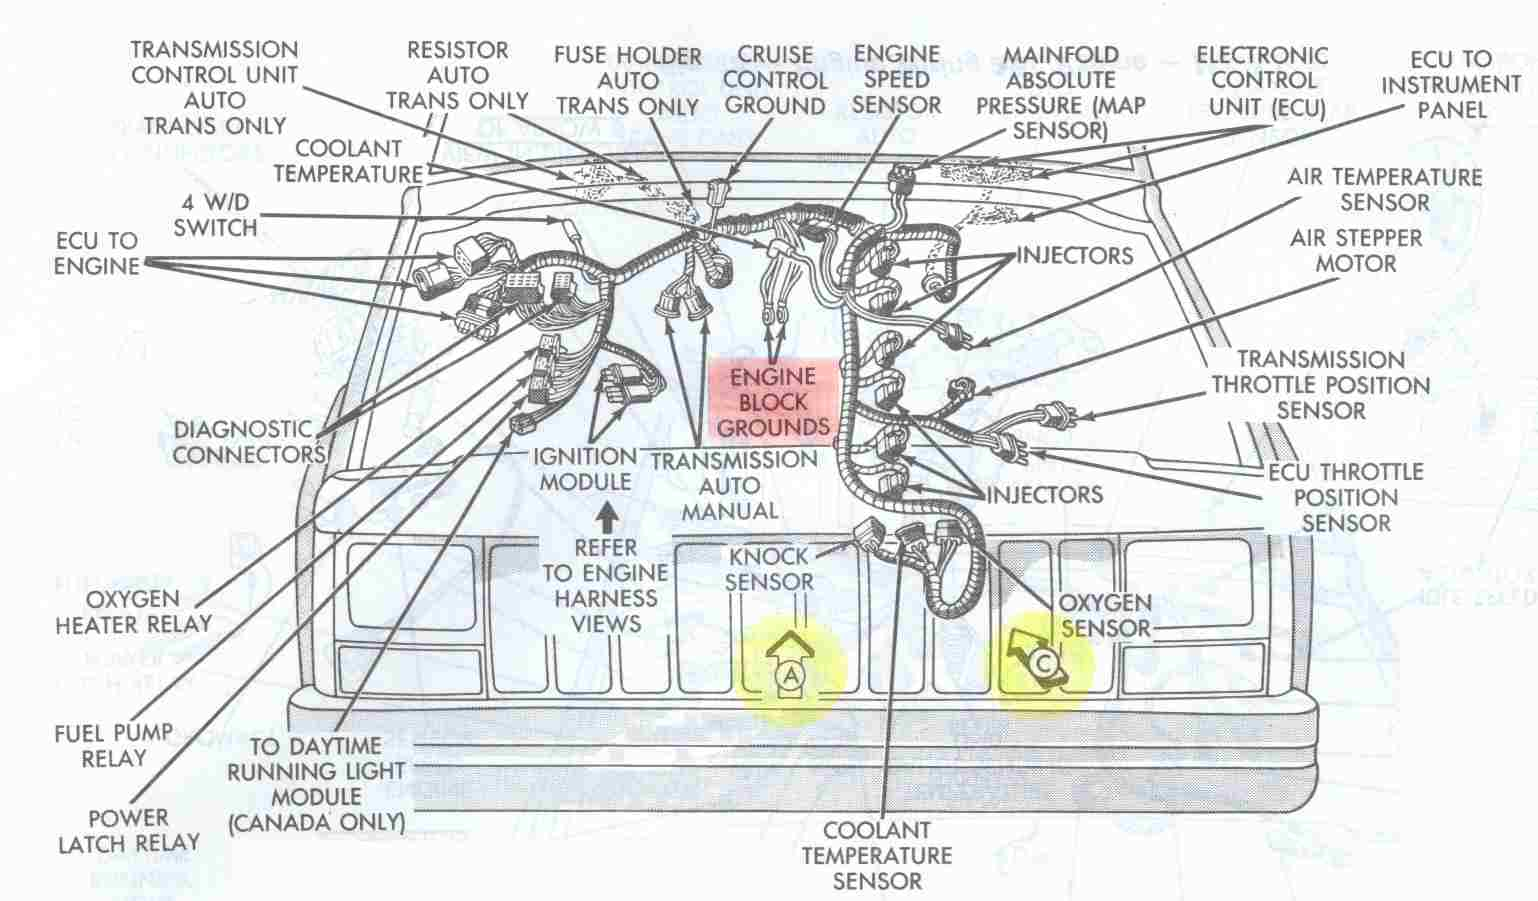 95 Honda Civic Head Diagram Not Lossing Wiring 1990 Hatchback Fuse Box Jeep Cherokee Electrical Diagnosing Erratic Behavior Of Accord